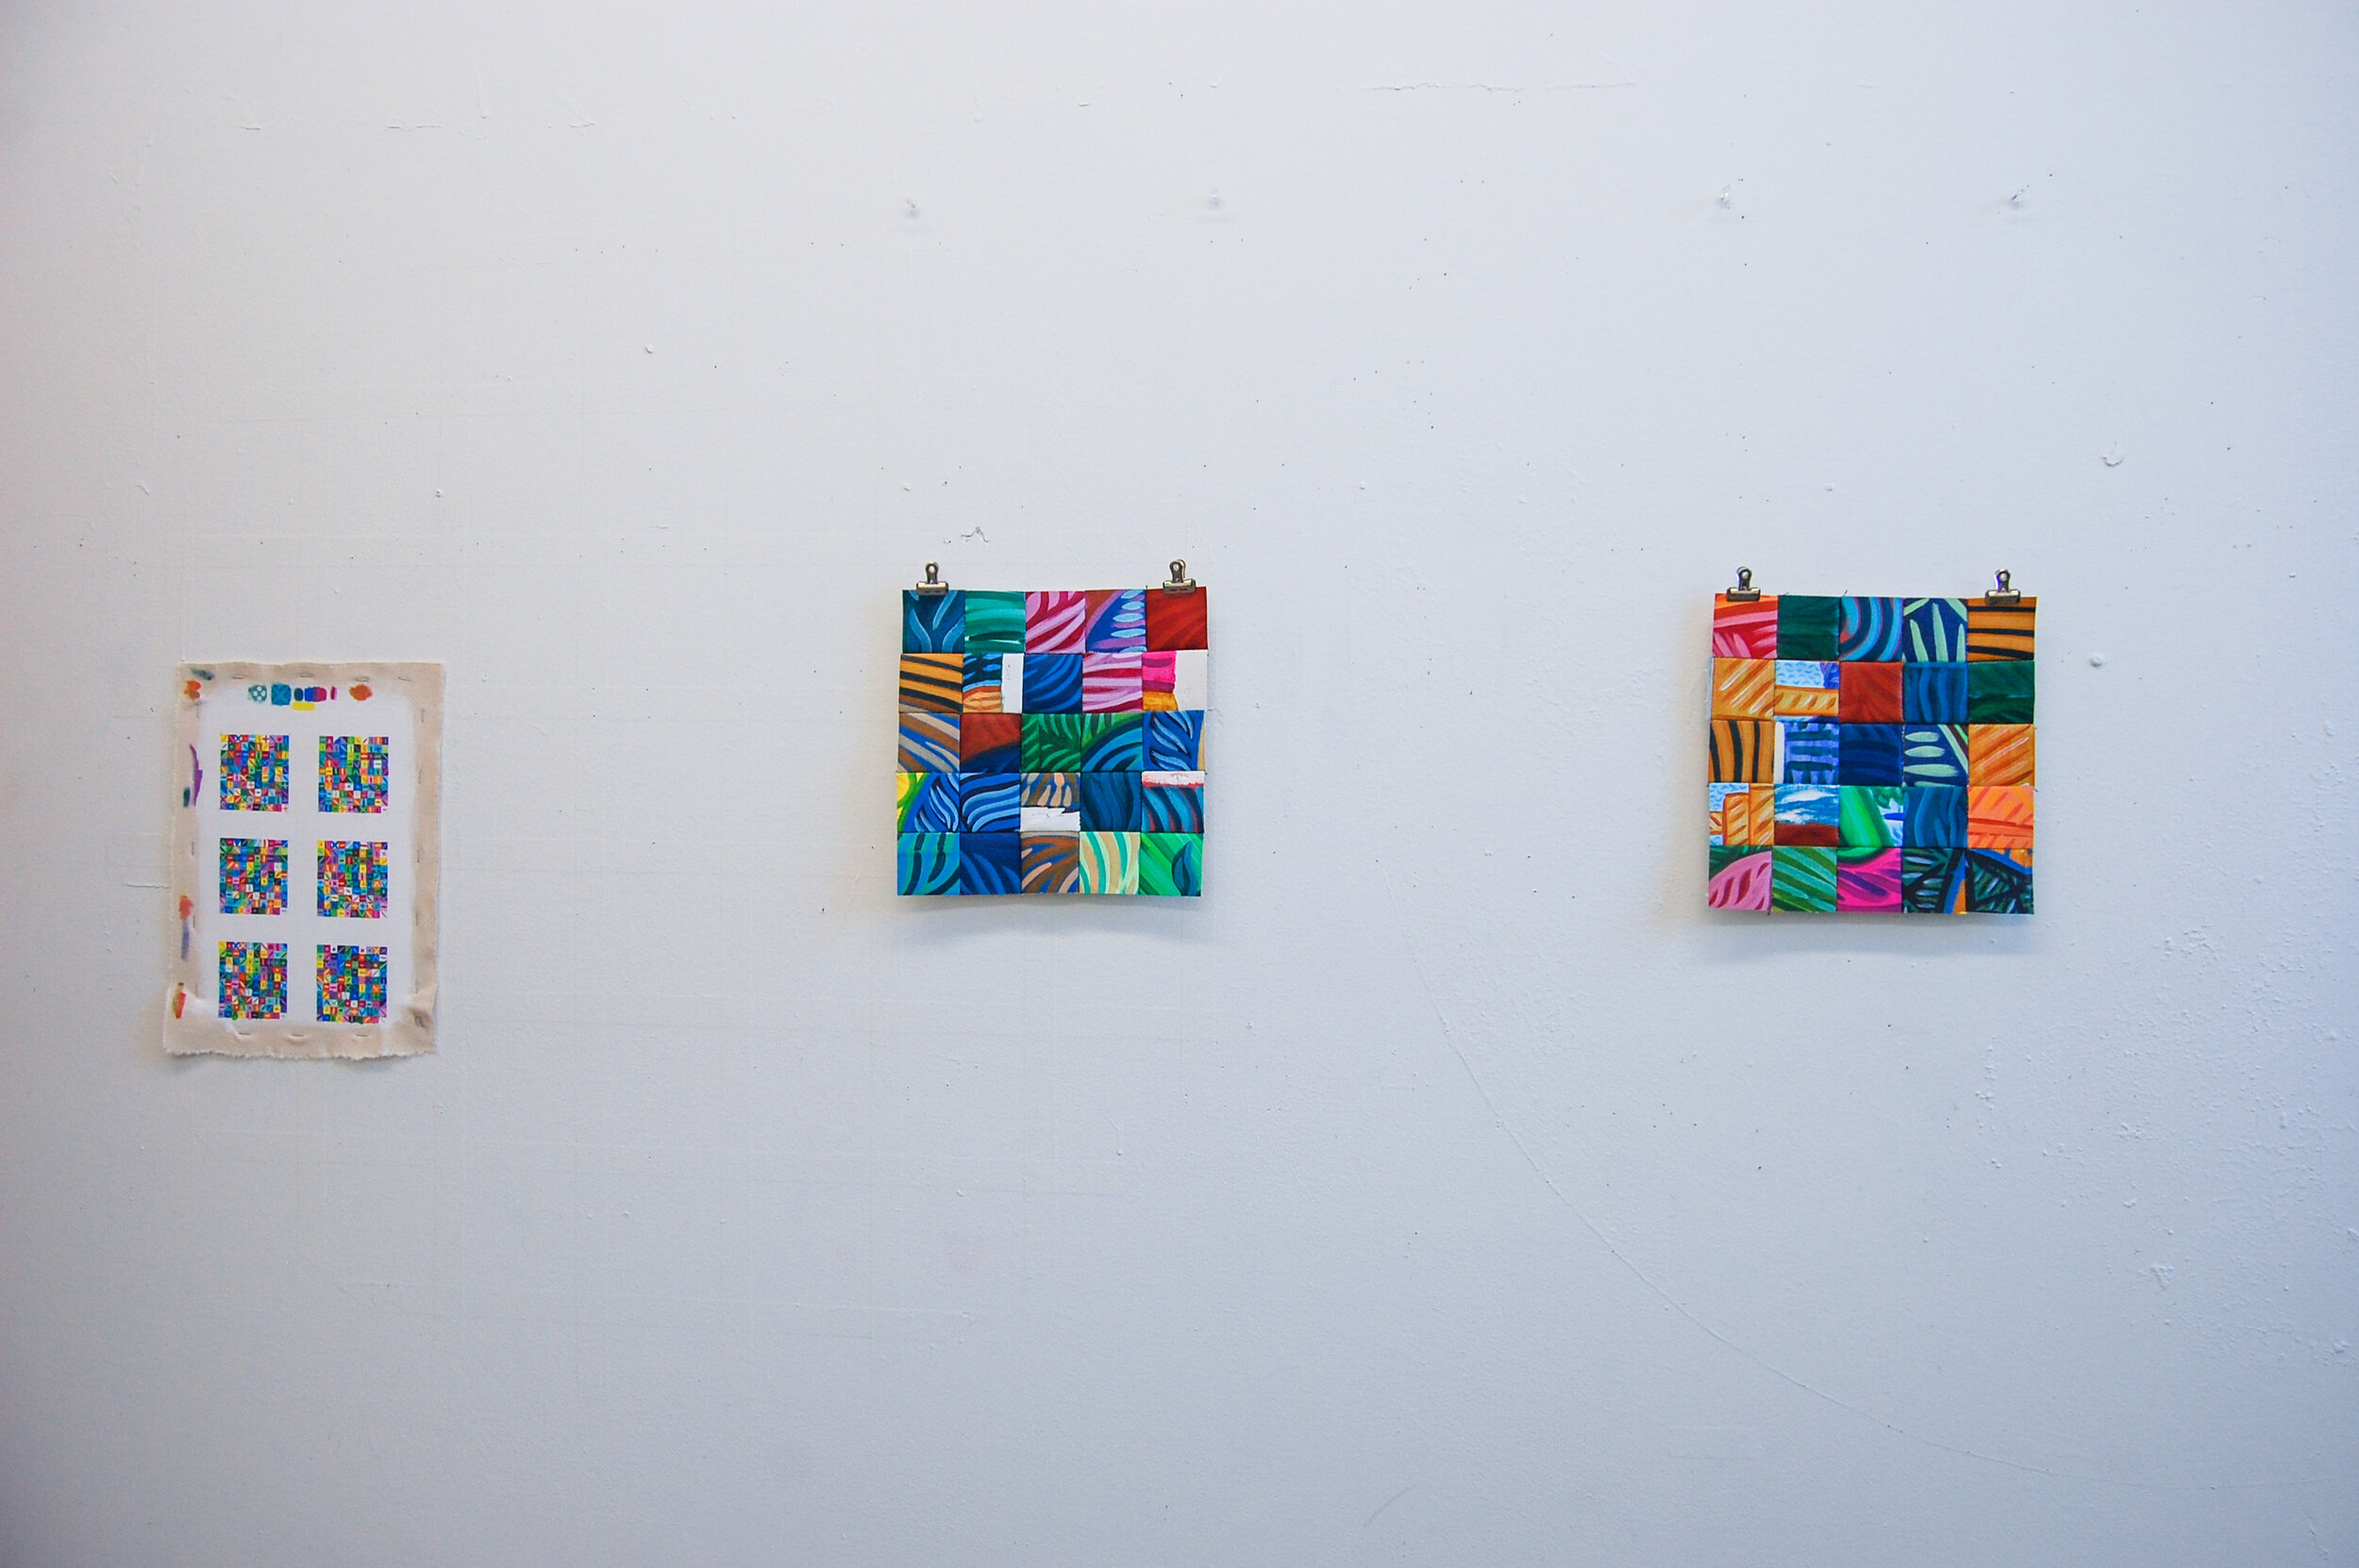 Untitled  (Left), 2019, gouache, canvas, 2.5 x 2.5 inches (each square),  Pattern B  (Middle), 2019, canvas, embroidery floss, graphite, 9.5 x 9.5 inches,  Pattern A  (Right), 2019, canvas, embroidery floss, graphite, 9.5 x 9.5 inches